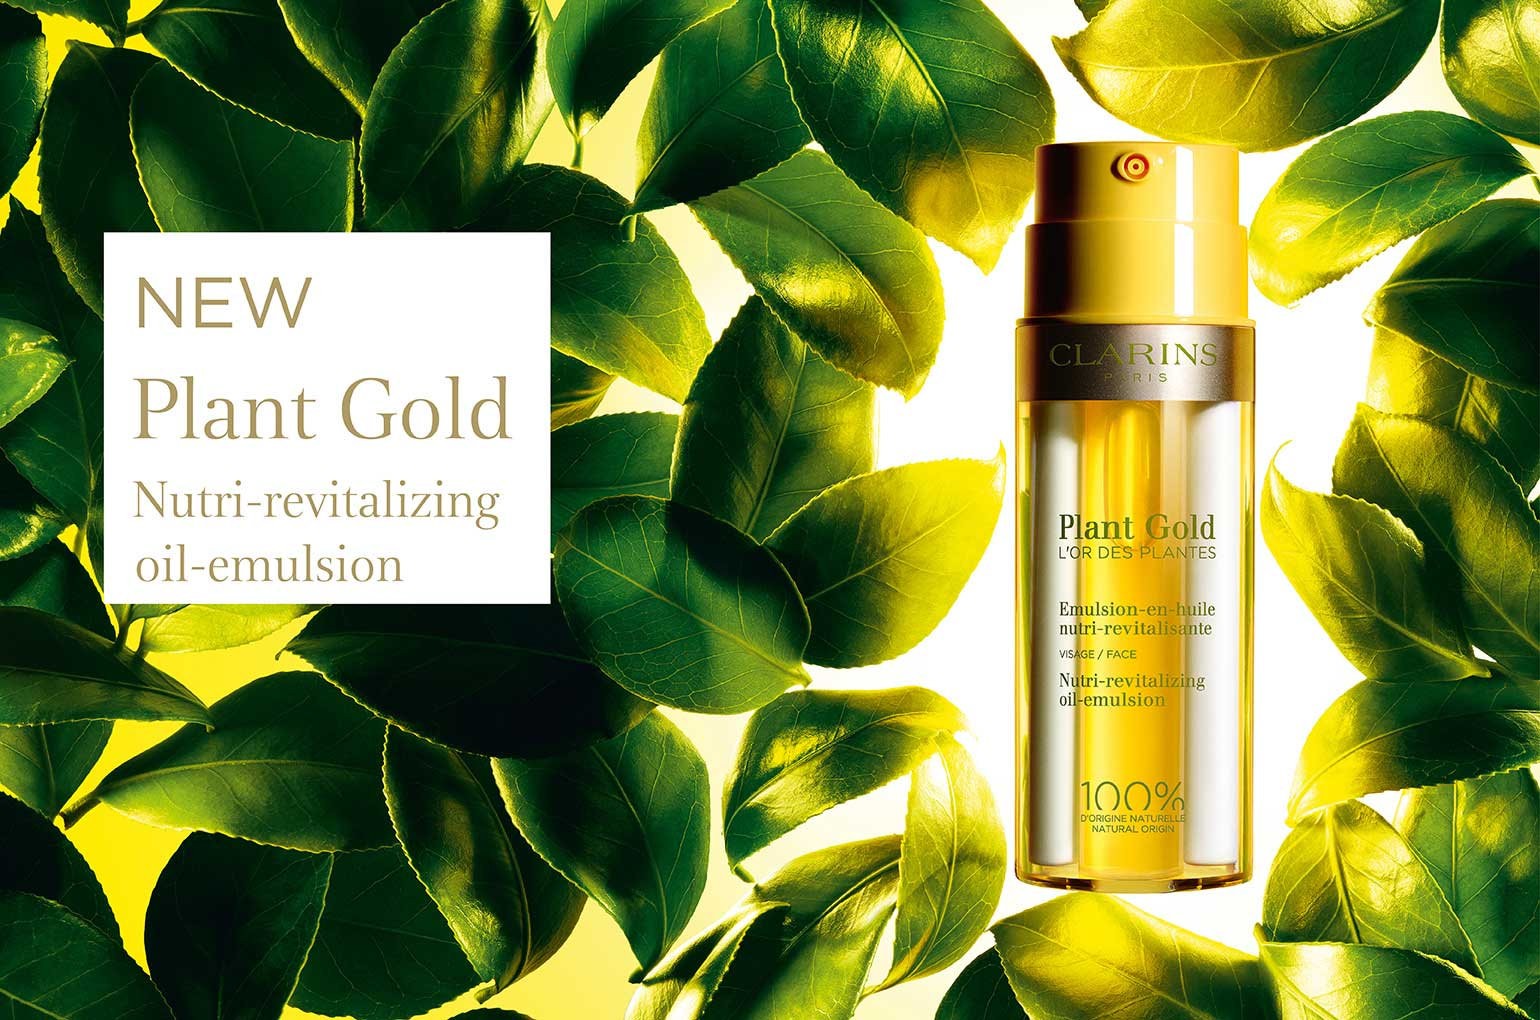 NEW for 2020 is Clarins Plant Gold